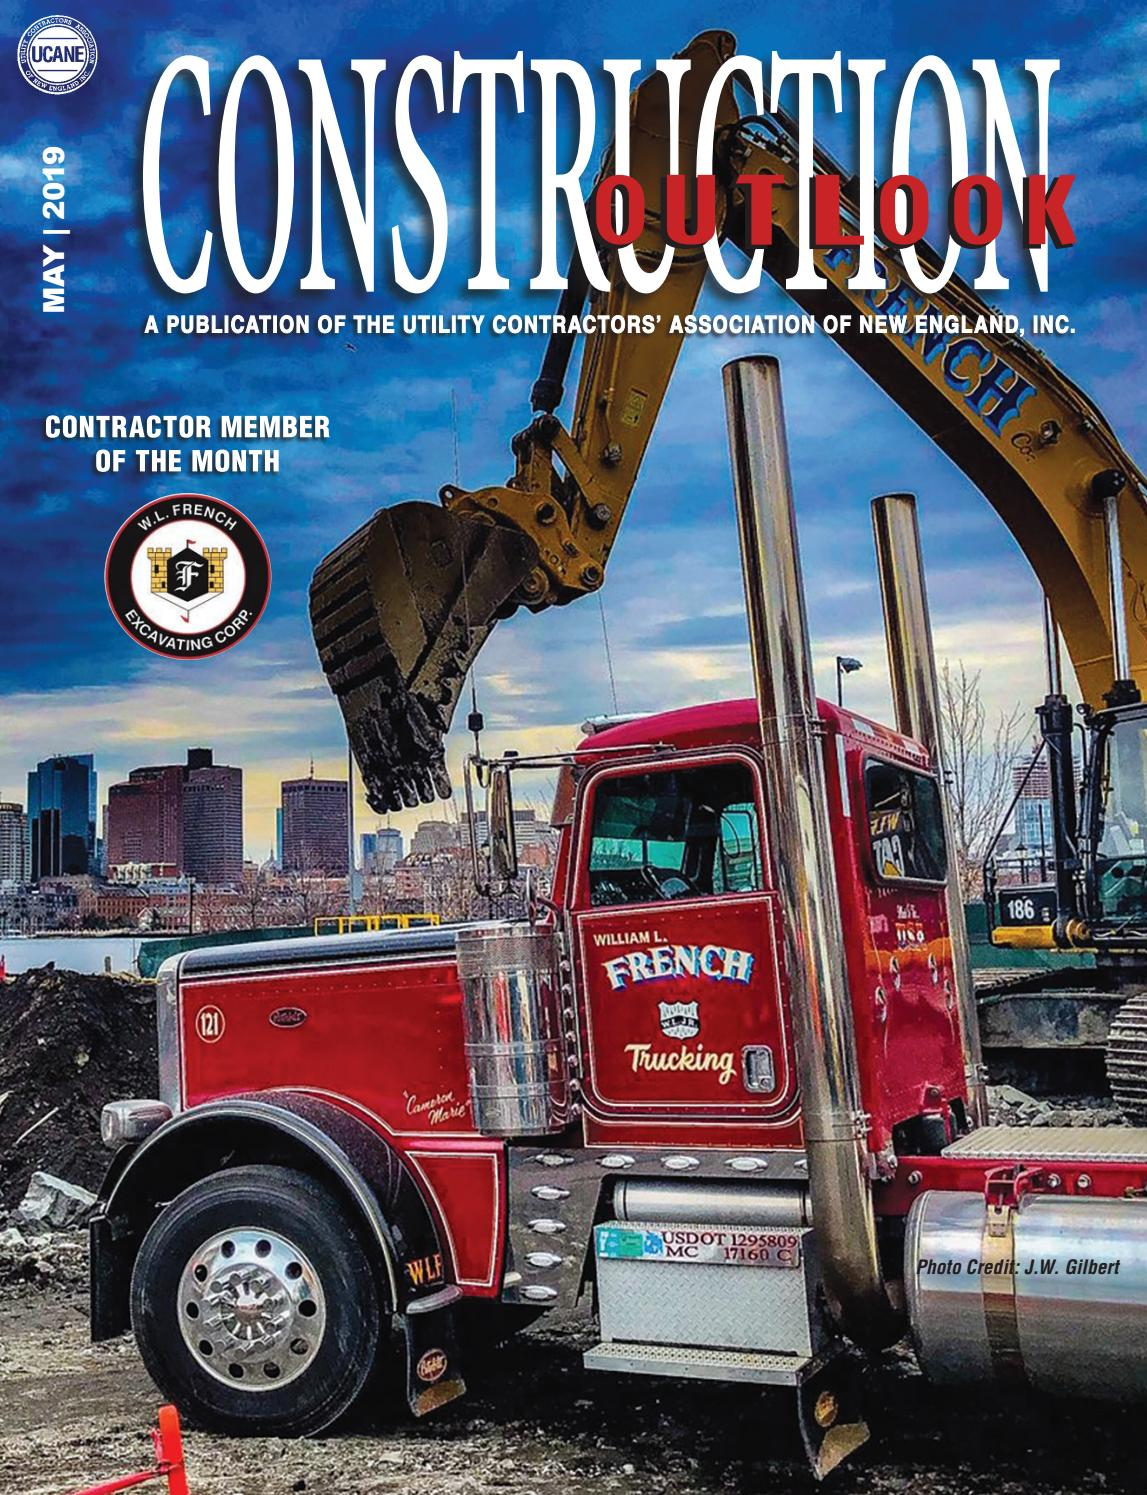 Construction Outlook May 2019 by Ucane - issuu